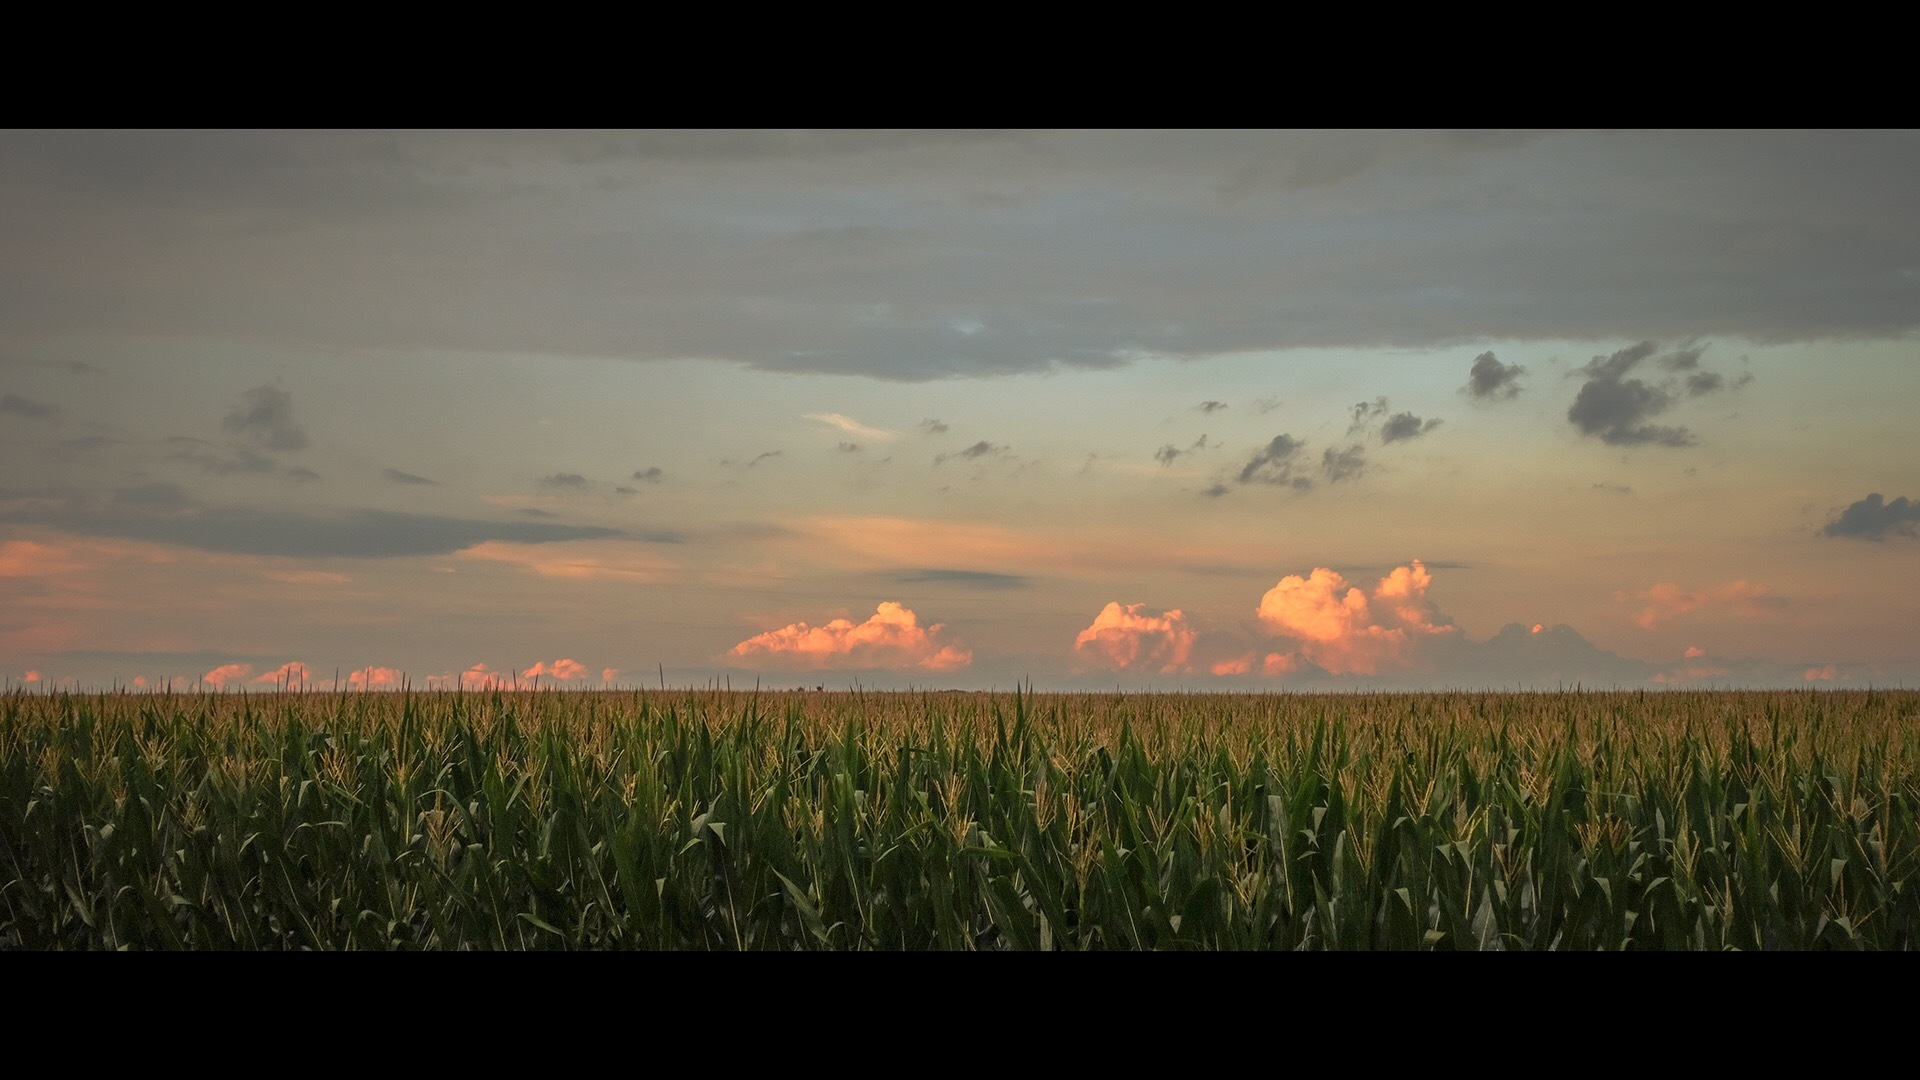 Midwest Sunset by Kevin E. Nelson